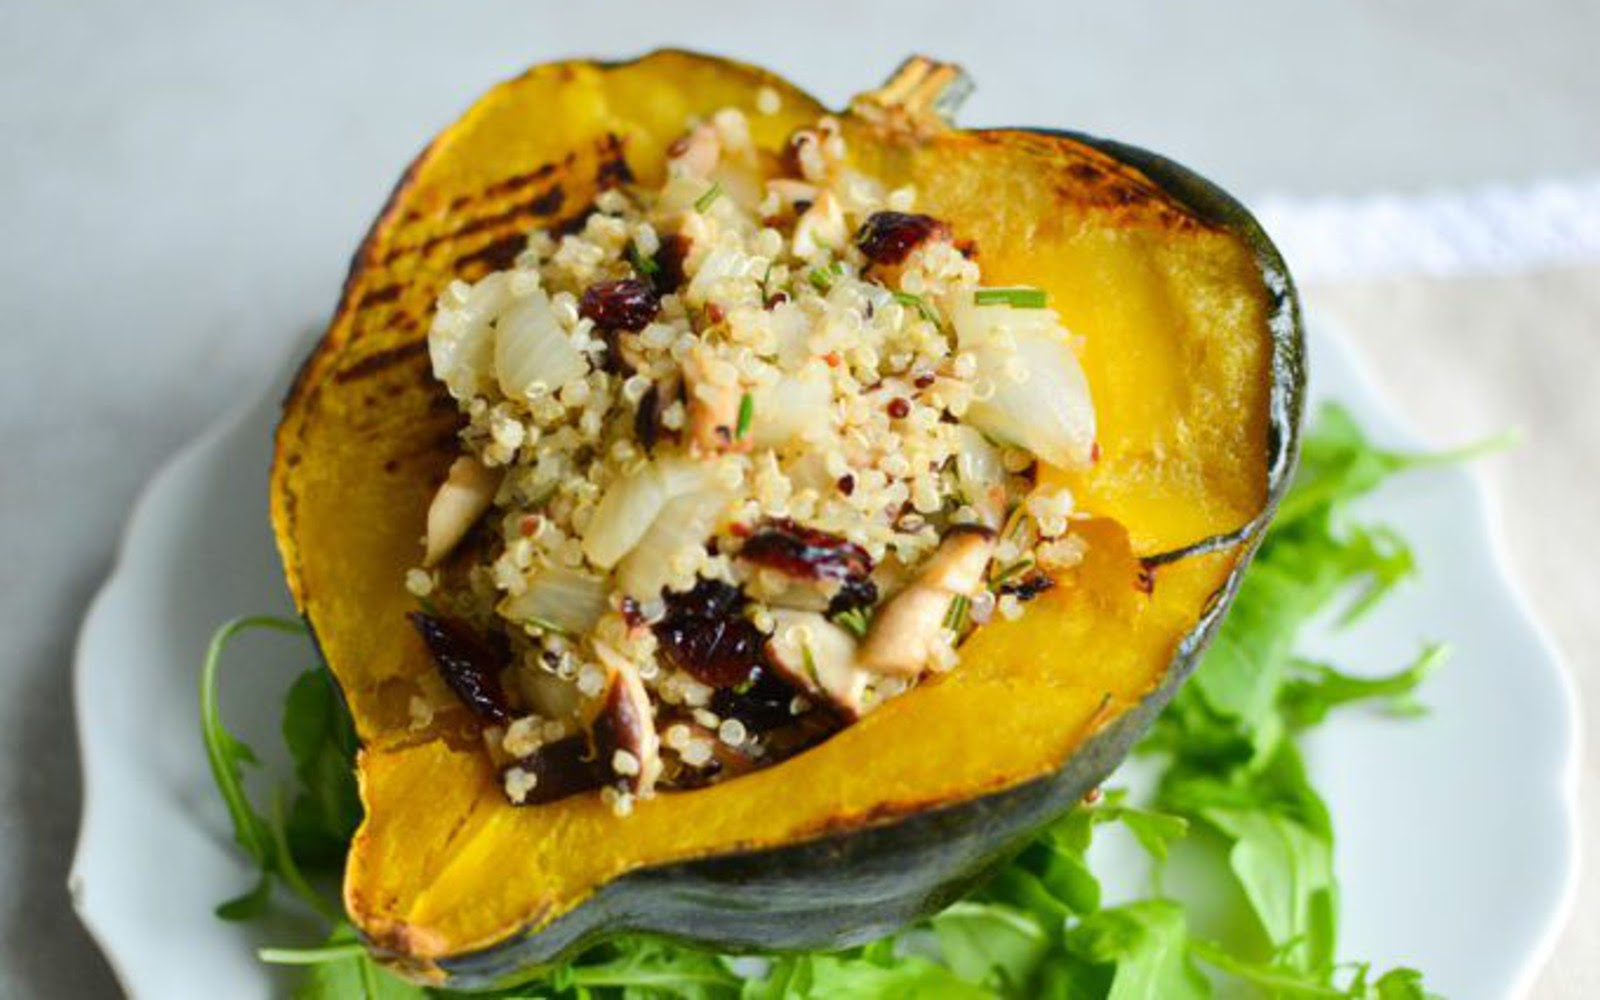 Non-traditional thanksgiving dinner ideas: Quinoa mushroom stuffed acorn squash